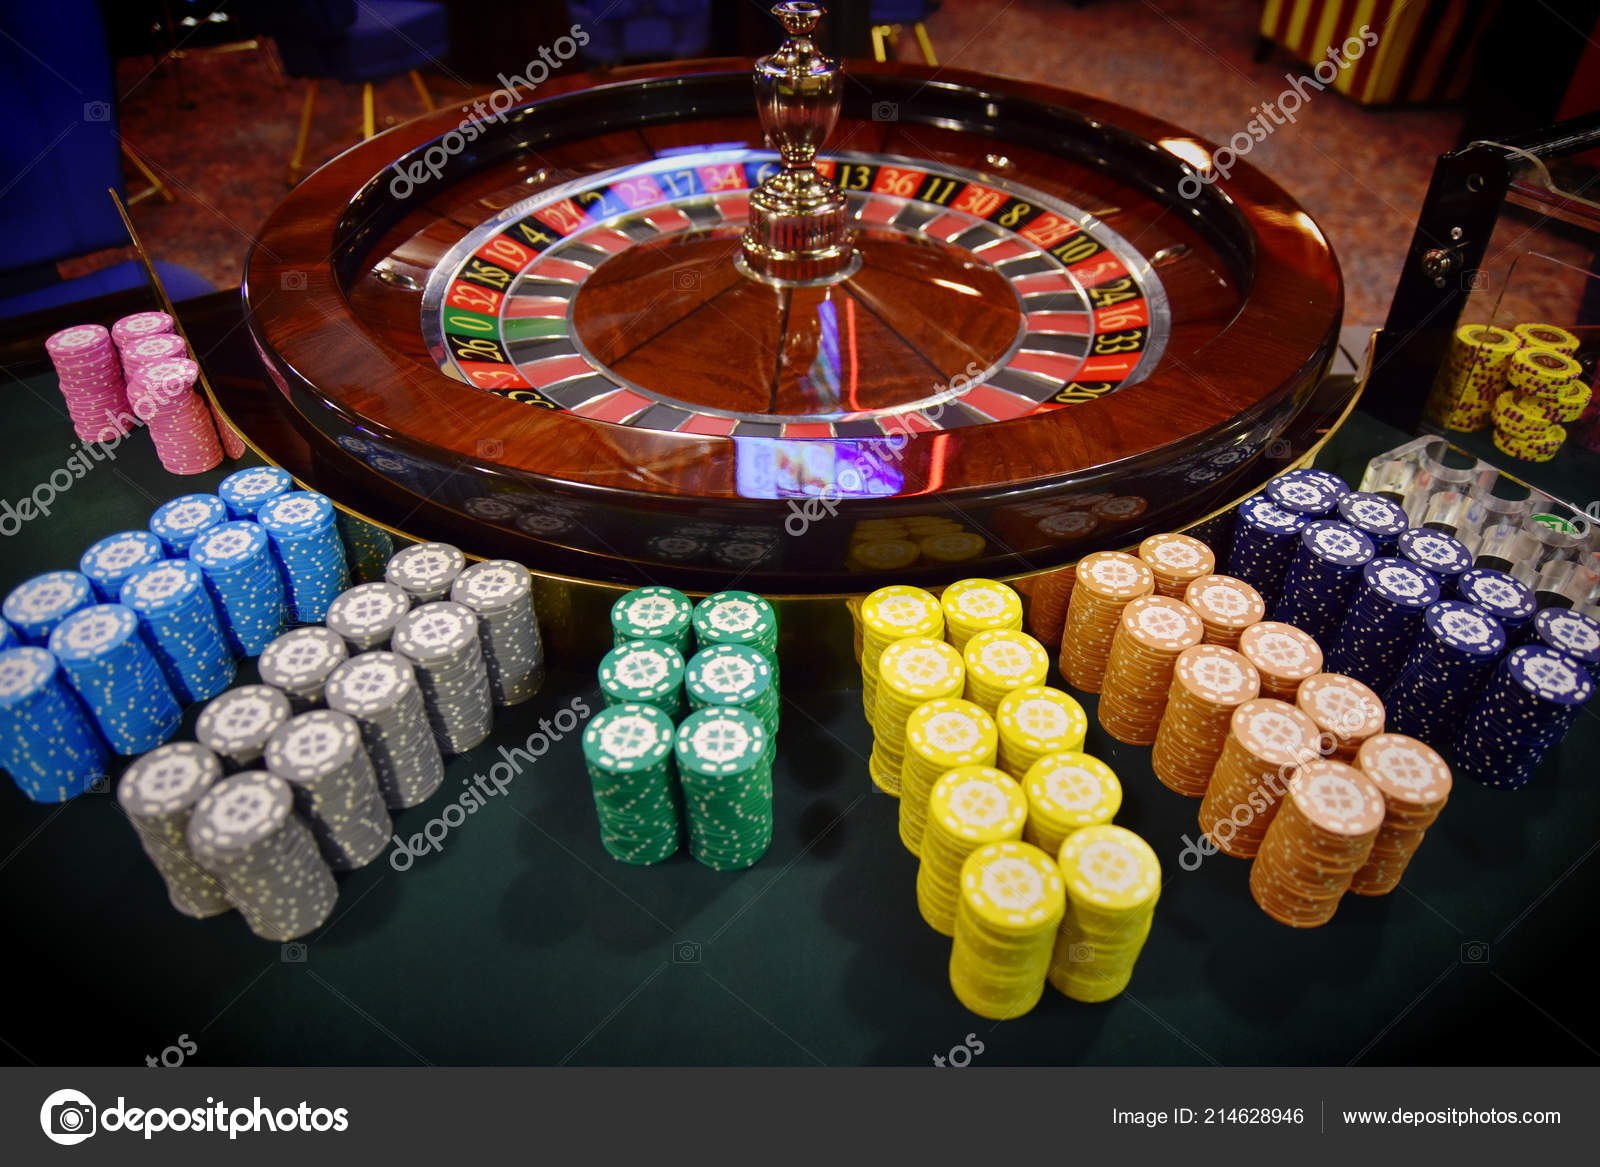 betting chips in roulette